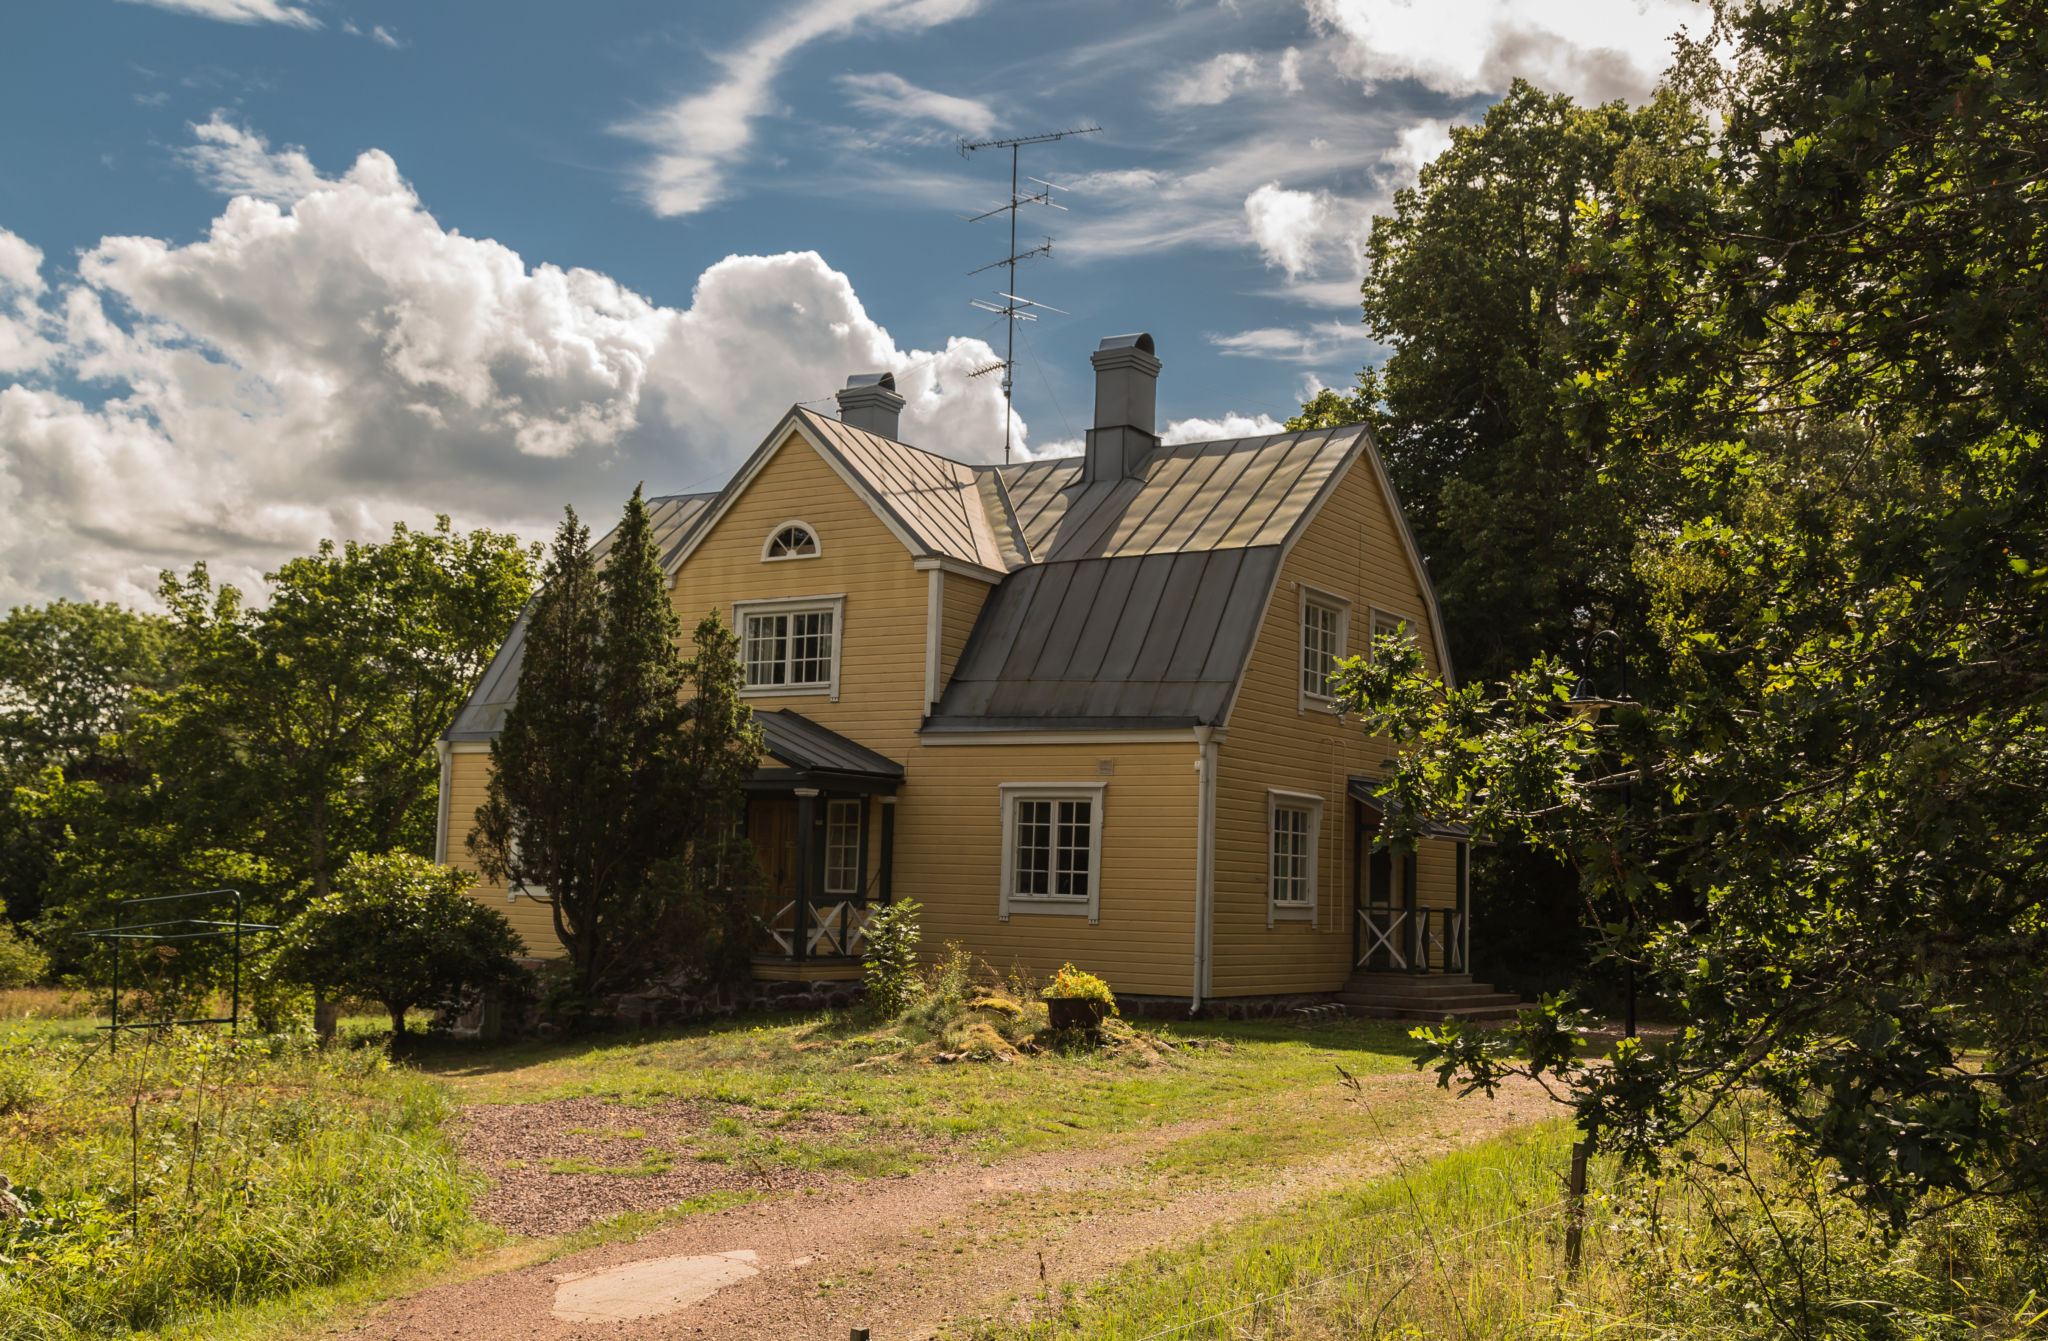 The yellow house at Husö biological station